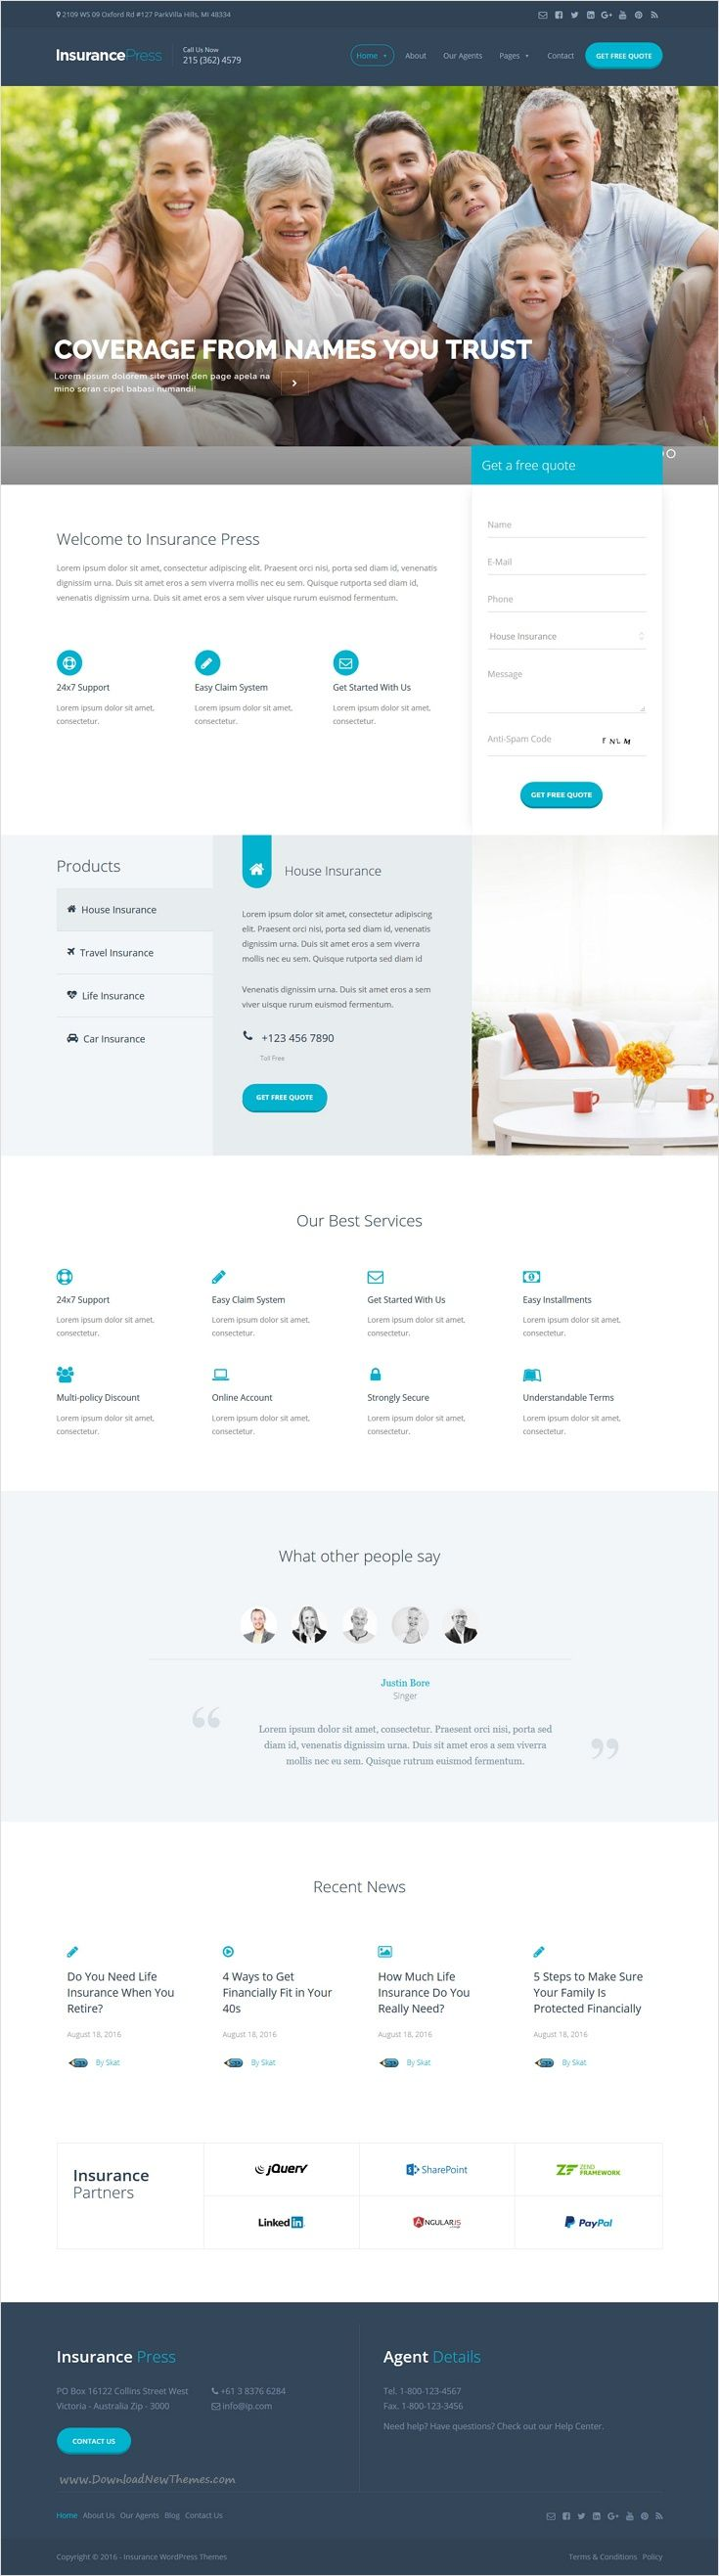 Insurance Press is a powerful Easy to Use, Highly Customizable Premium #WordPress theme for #webdev #Insurance Agency website download now➩ https://themeforest.net/item/insurance-press-insurance-agency-wordpress-theme/17683731?ref=Datasata